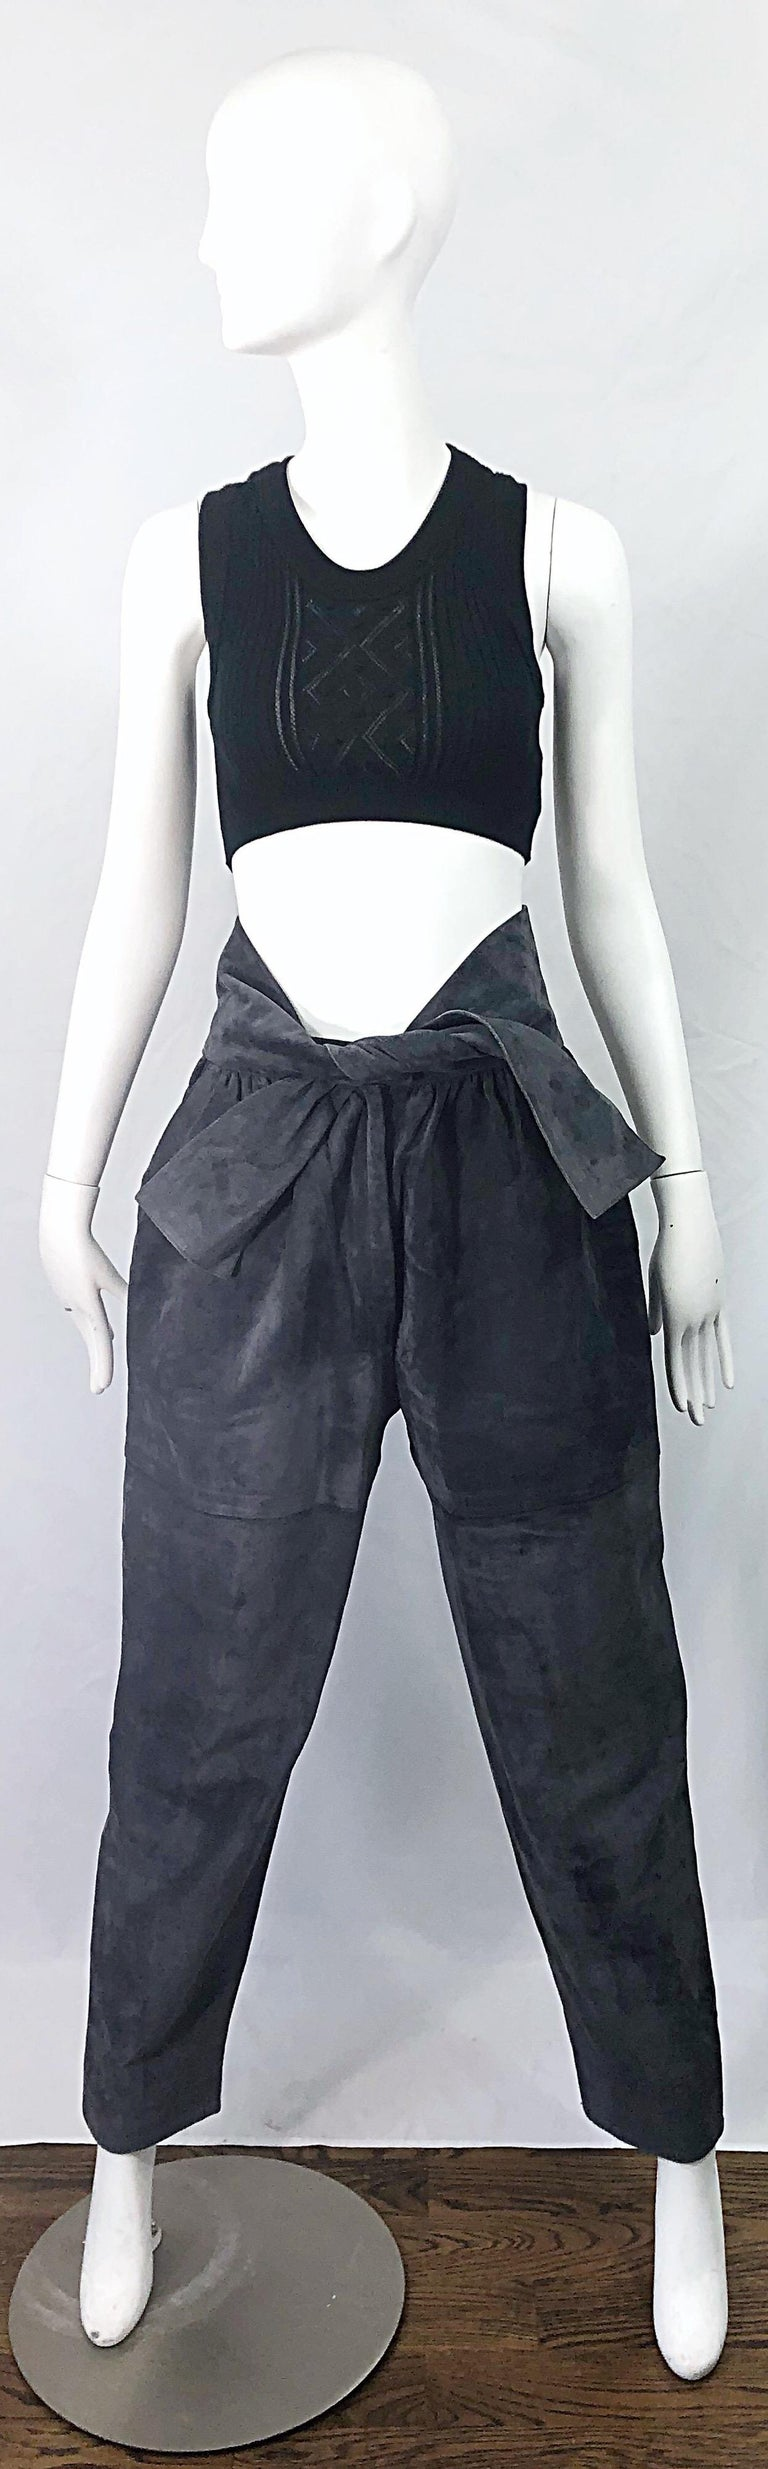 Amazing collectible RARE vintage early 80s YVES SAINT LAURENT Rive Gauche elephant gray suede leather high waisted harem pants / trousers ! Features a high waist with pockets at each side of the hips. Attached tie belt ties at center waist. Hidden